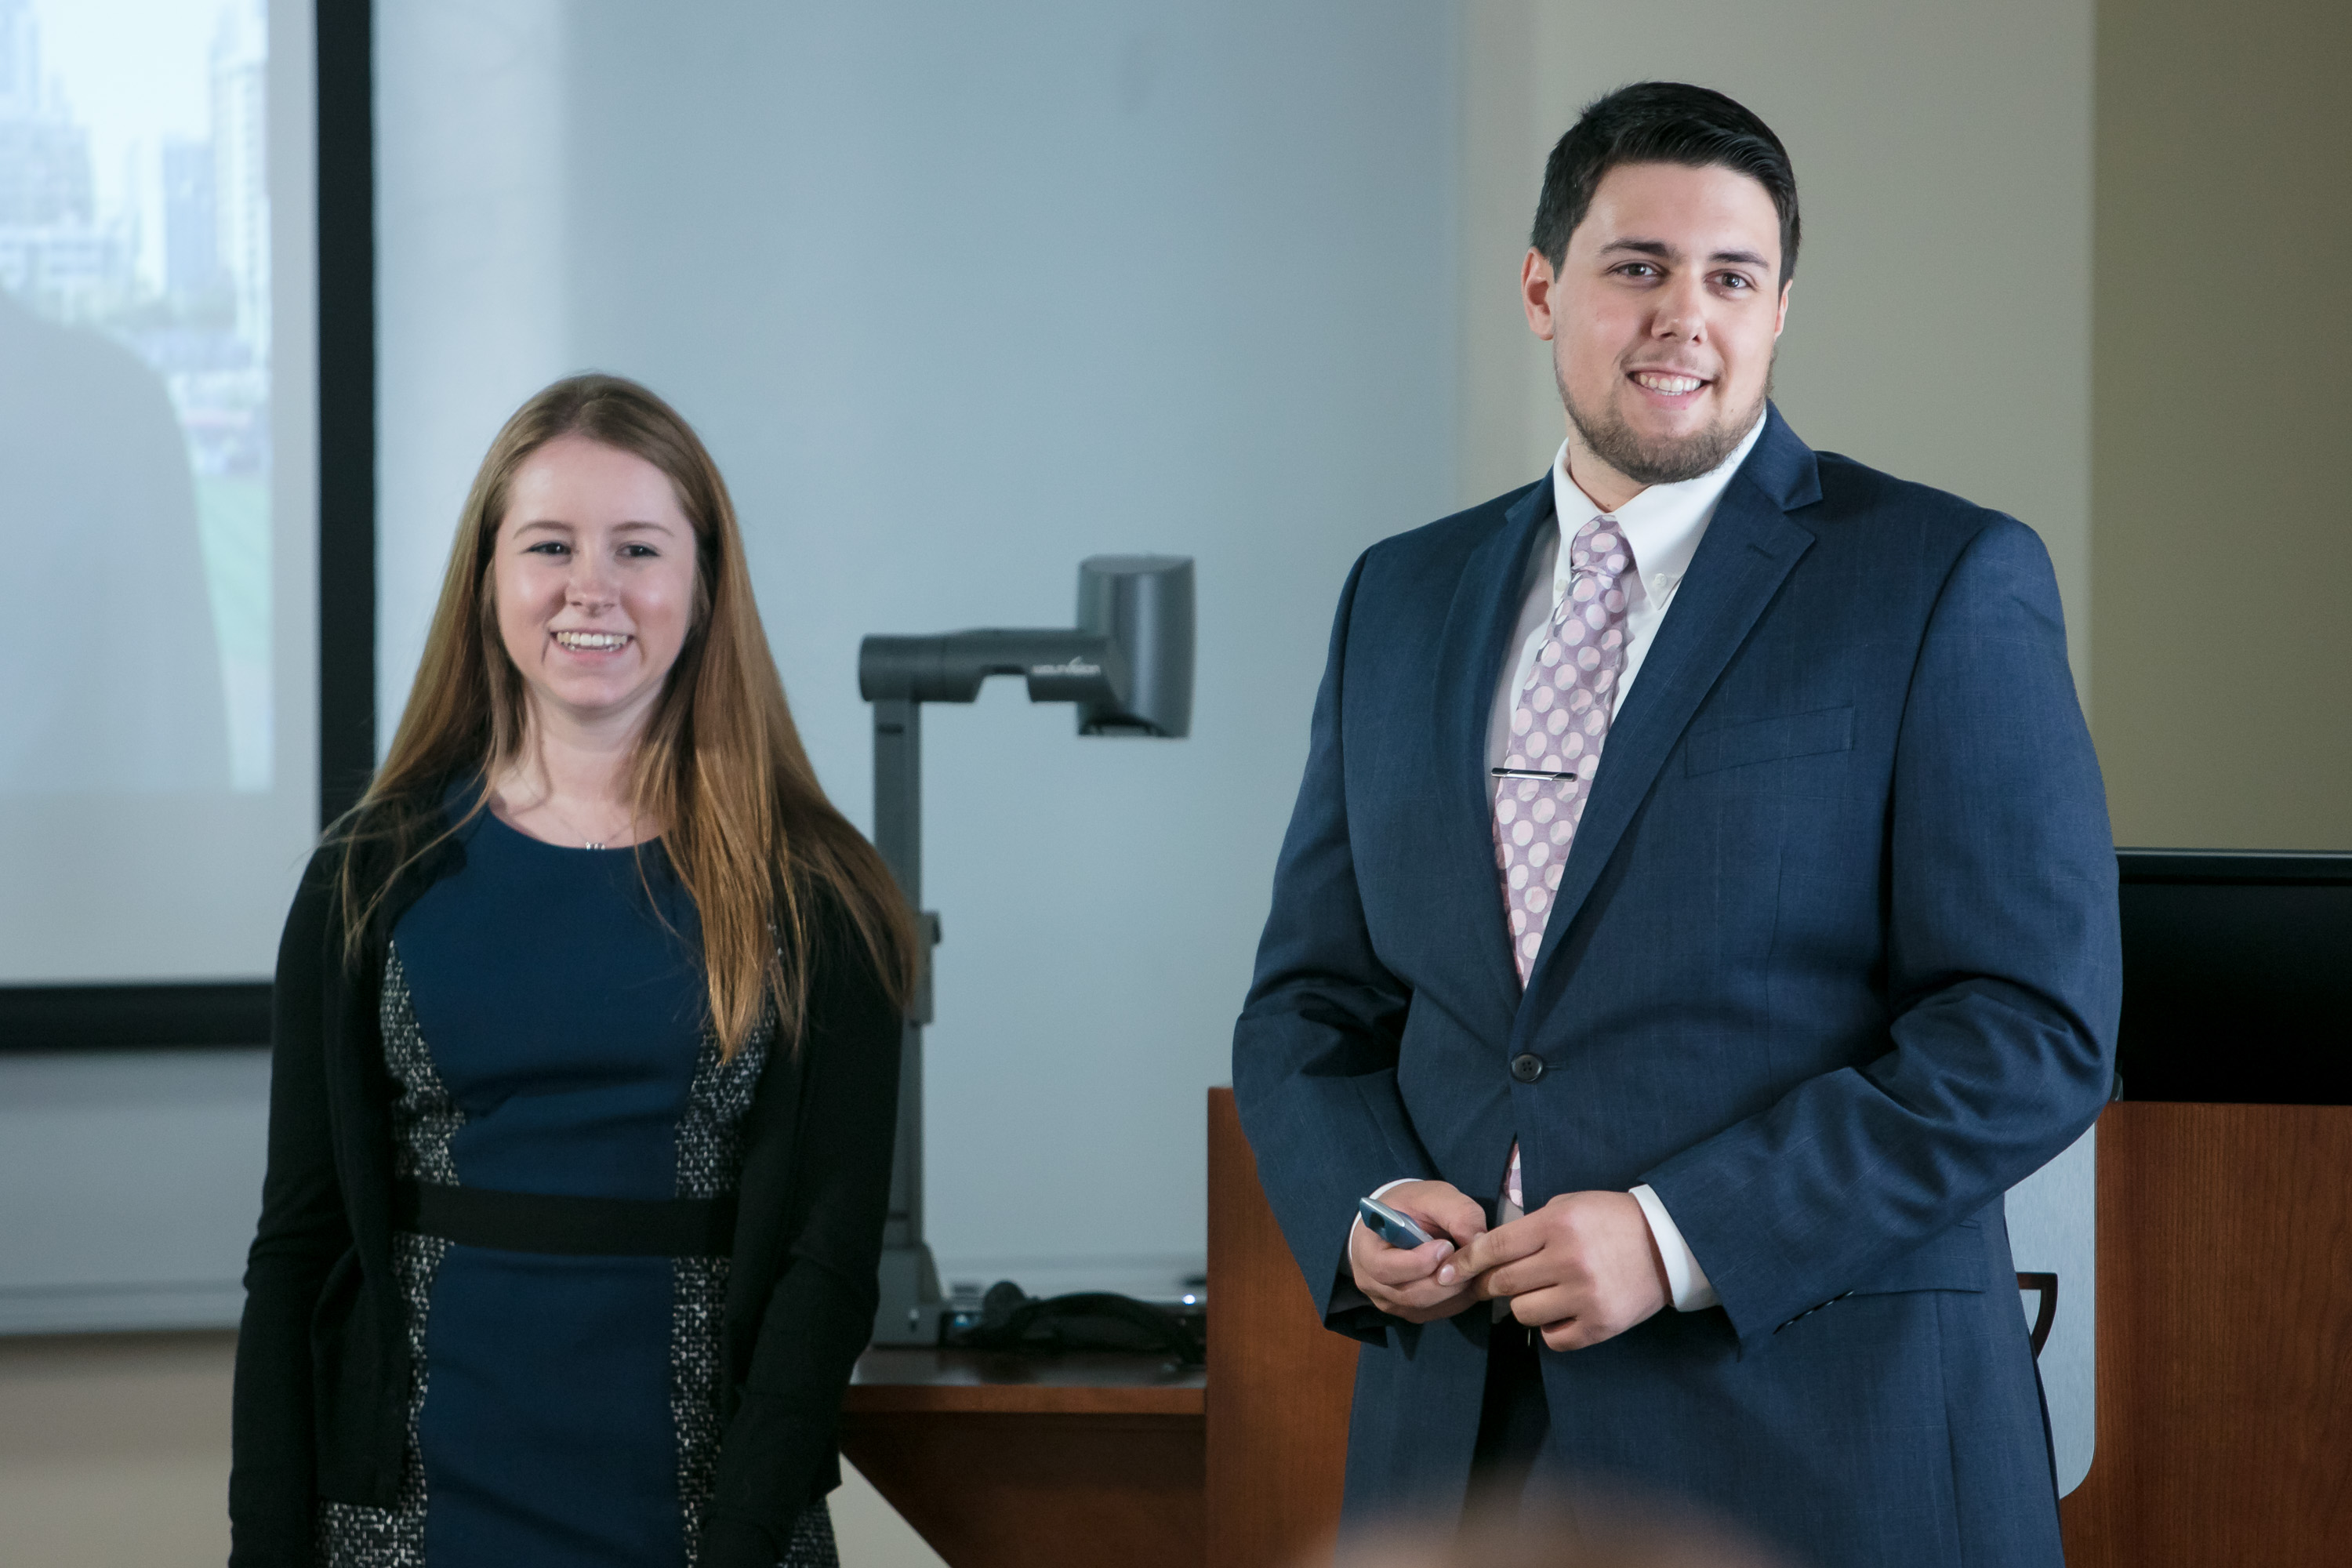 PRAD students Melissa Bellew, left, and Ben Gartland present campaign plan ideas about sustainability to FOX Sports, 21st Century Fox and Major League Baseball executives. (DePaul University/Jeff Carrion)